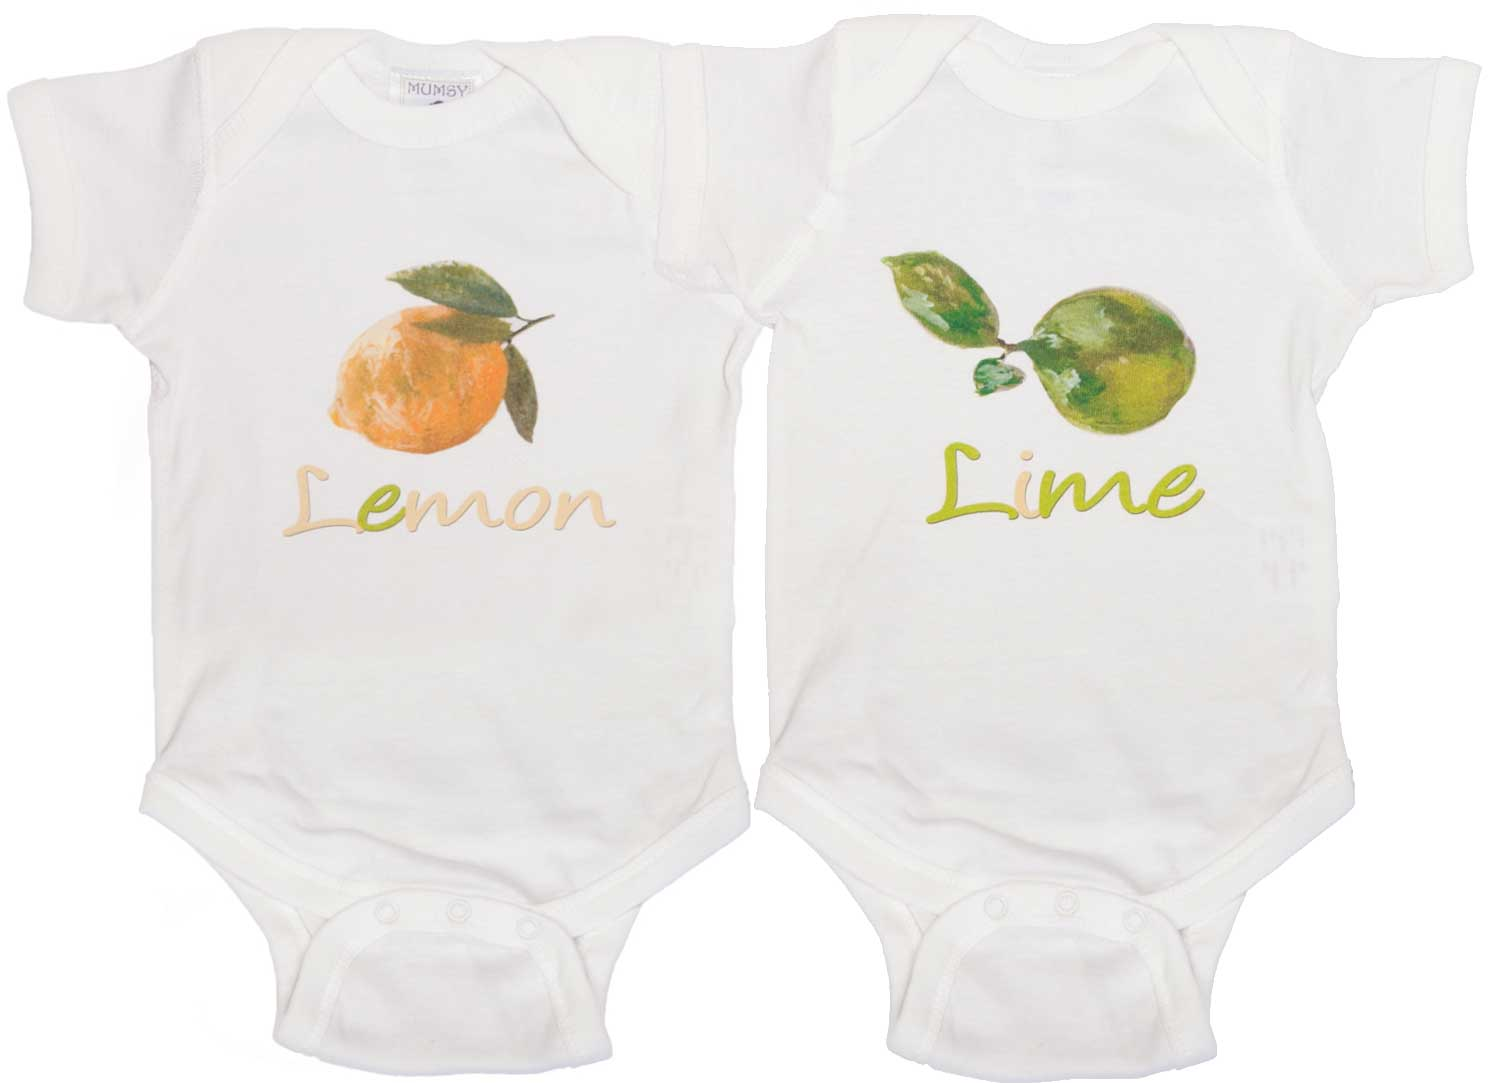 56b1eabe9e7 Cute Twin Shirts Lemon and Lime Rompers - Mumsy Goose